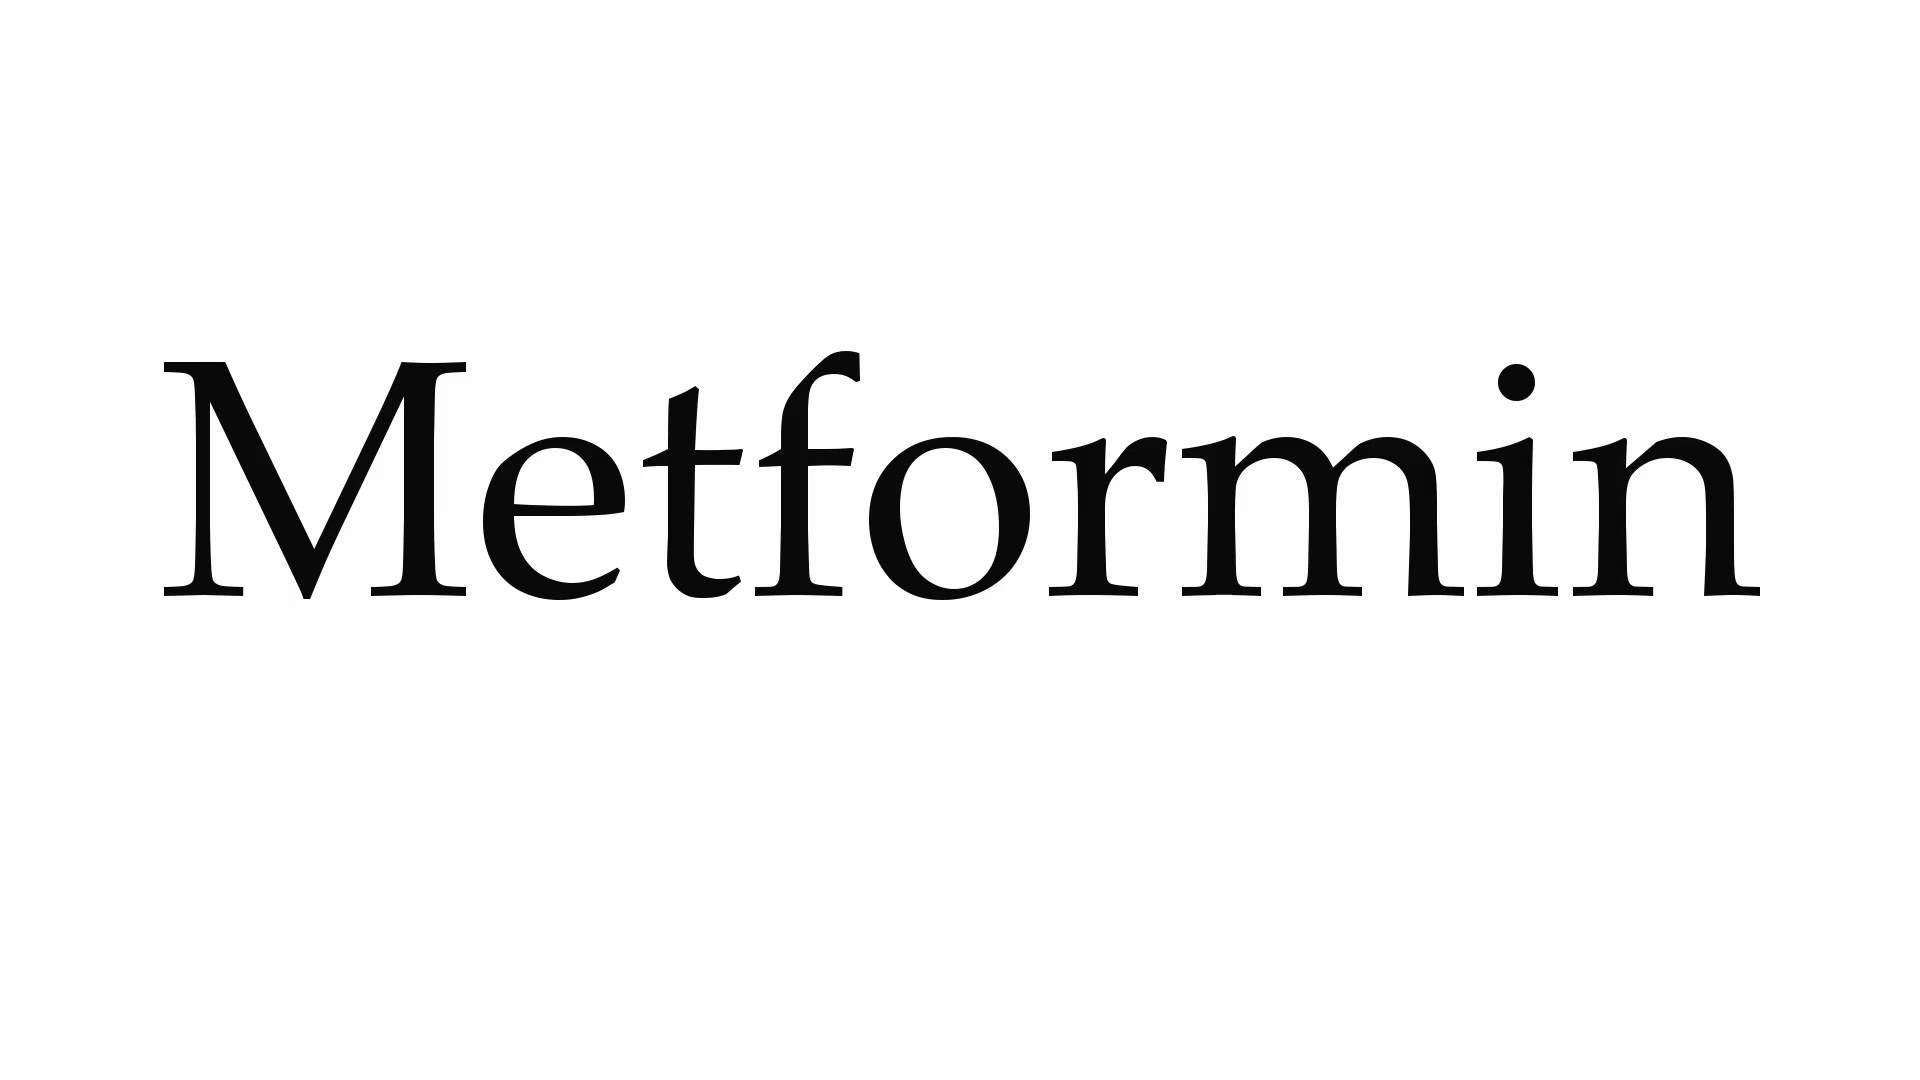 Long-term Metformin Use May Lower Colorectal Cancer Risk